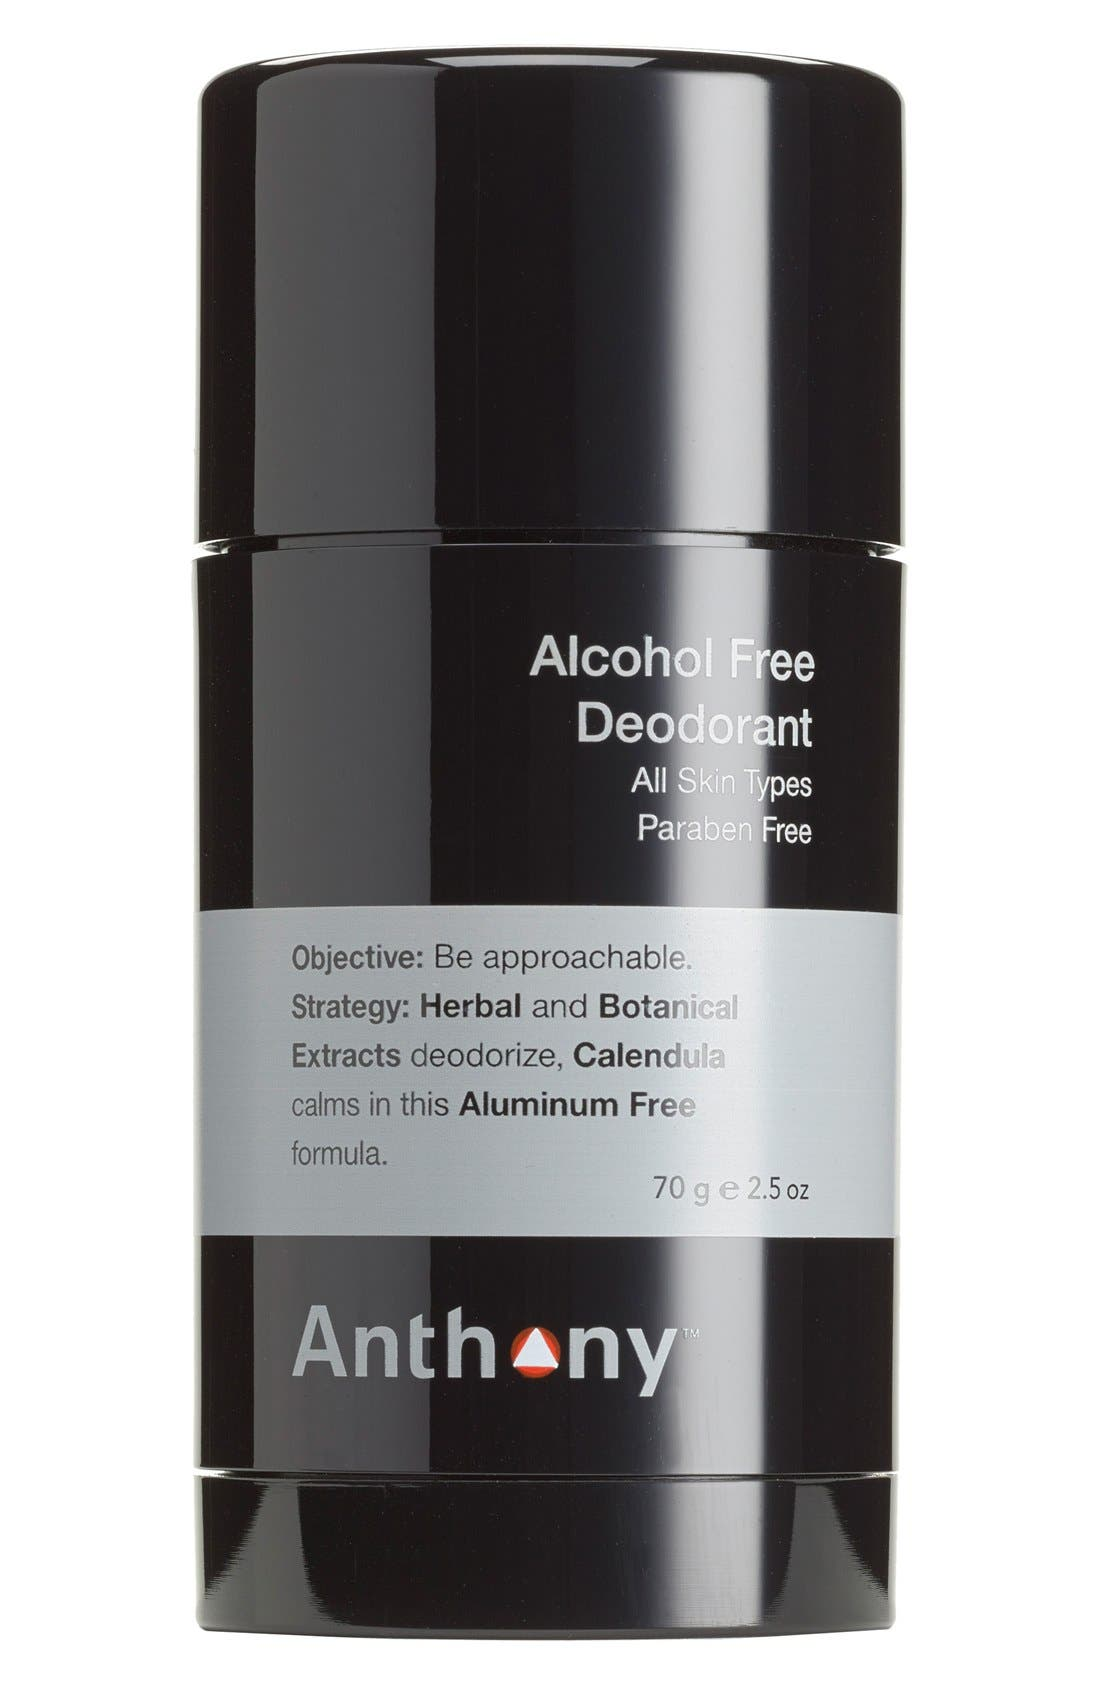 Anthony™ Alcohol Free Deodorant